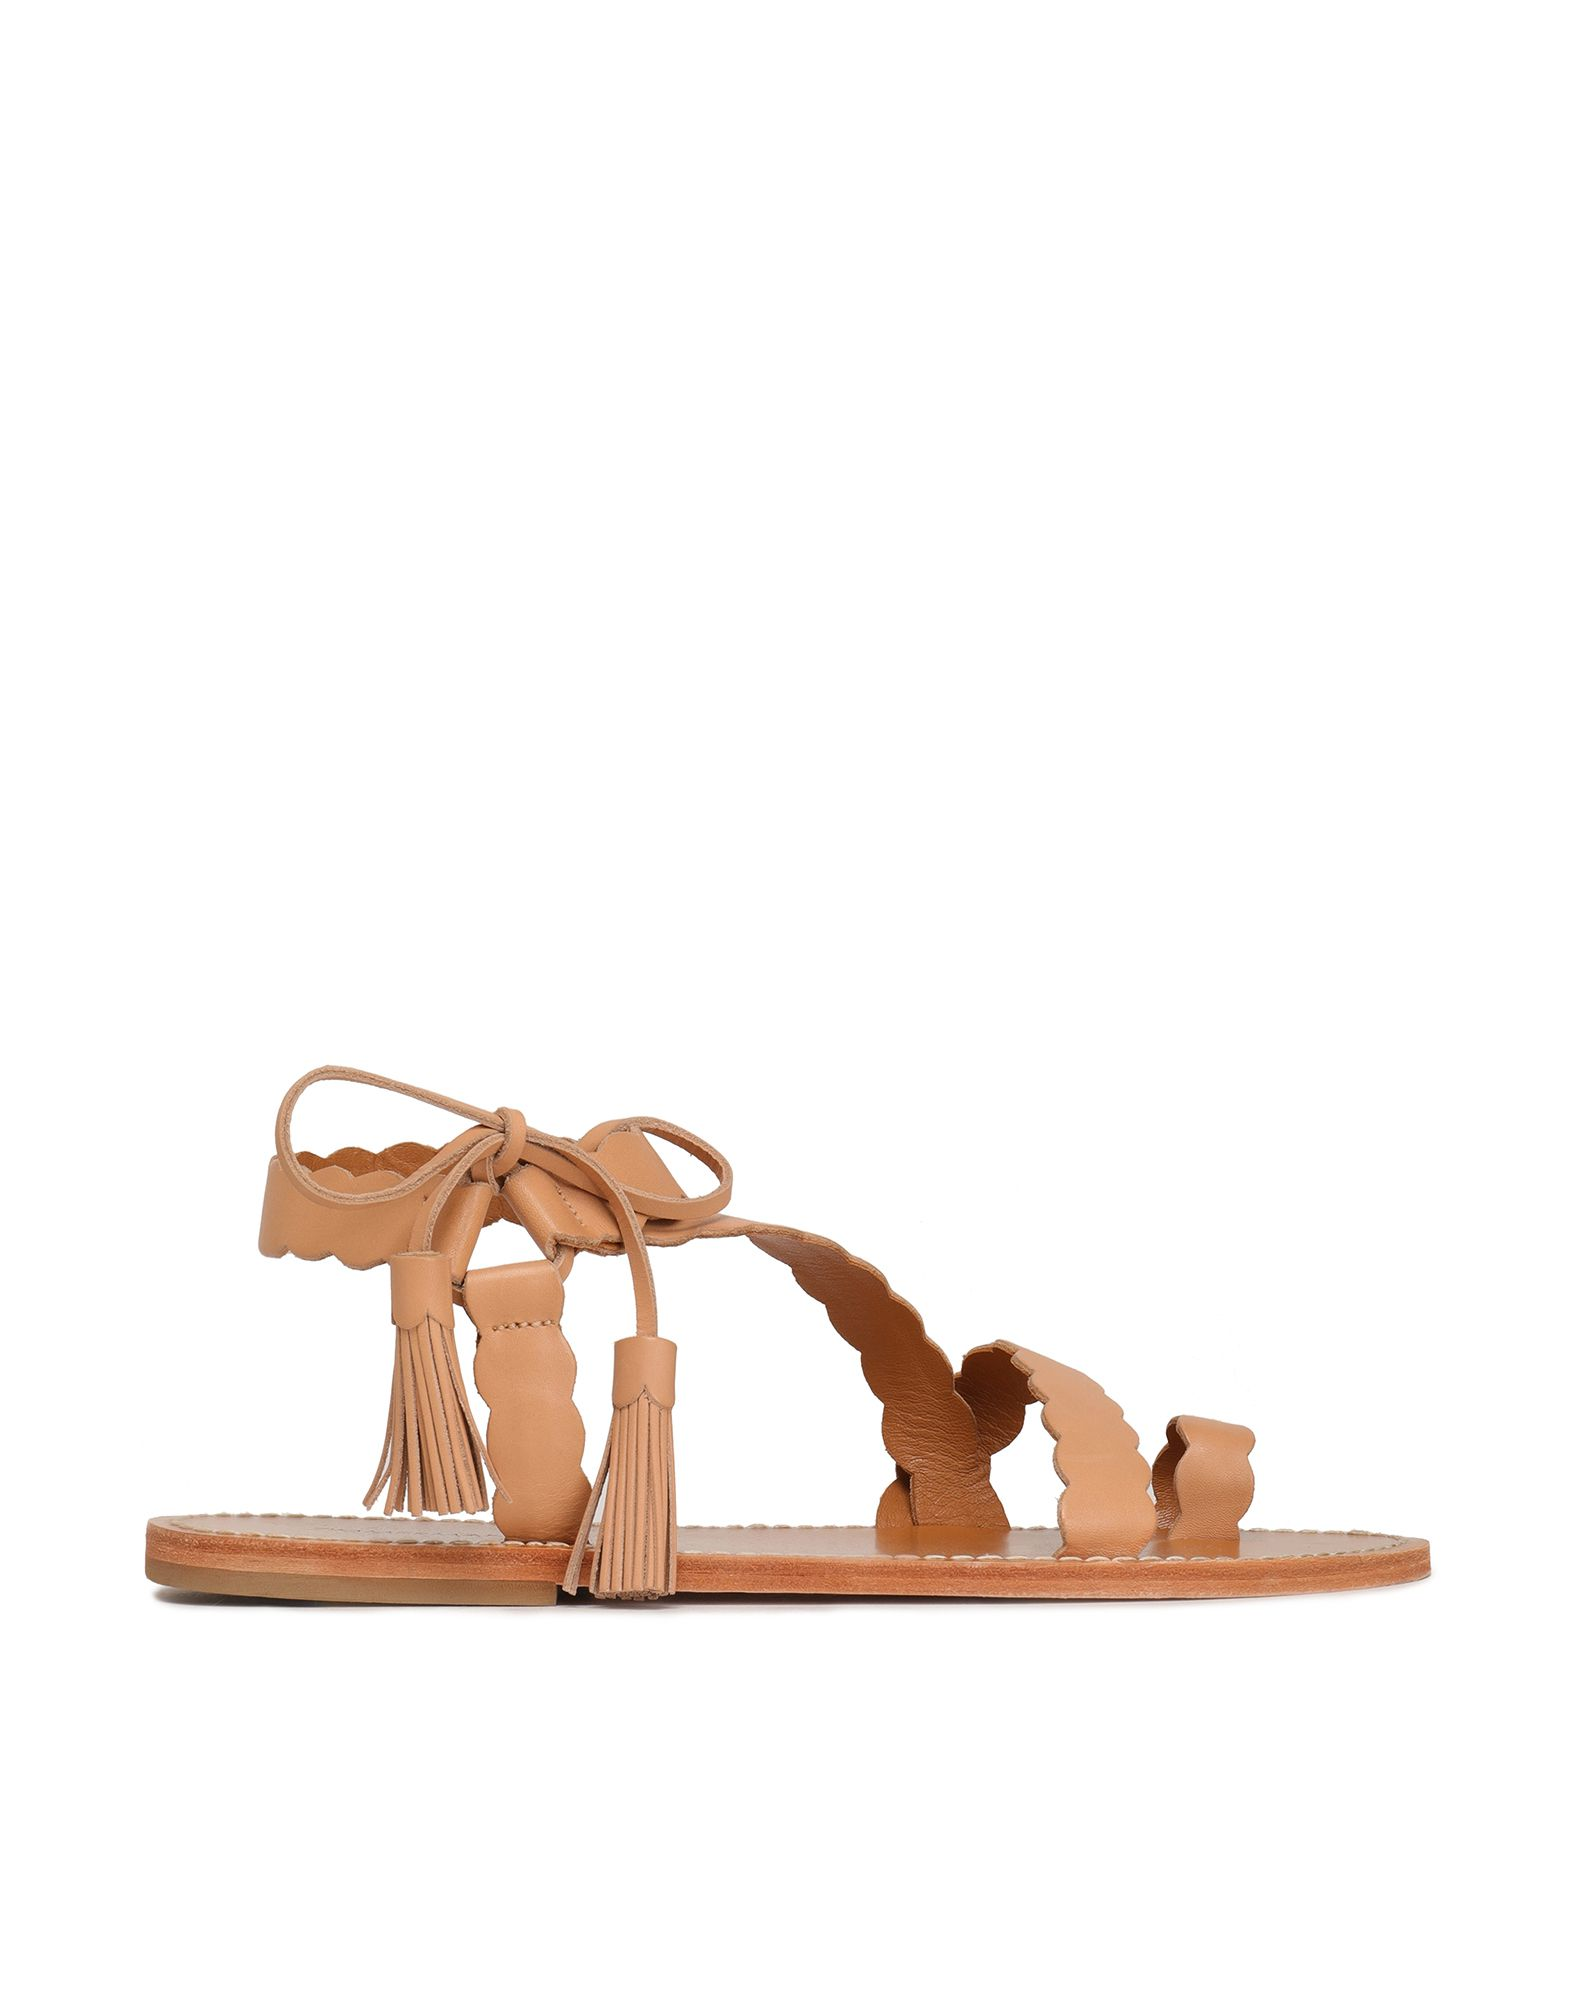 ZIMMERMANN Toe strap sandals. tassels, solid color, wrapping straps closure, round toeline, flat, leather lining, leather sole, leather, contains non-textile parts of animal origin. Soft Leather